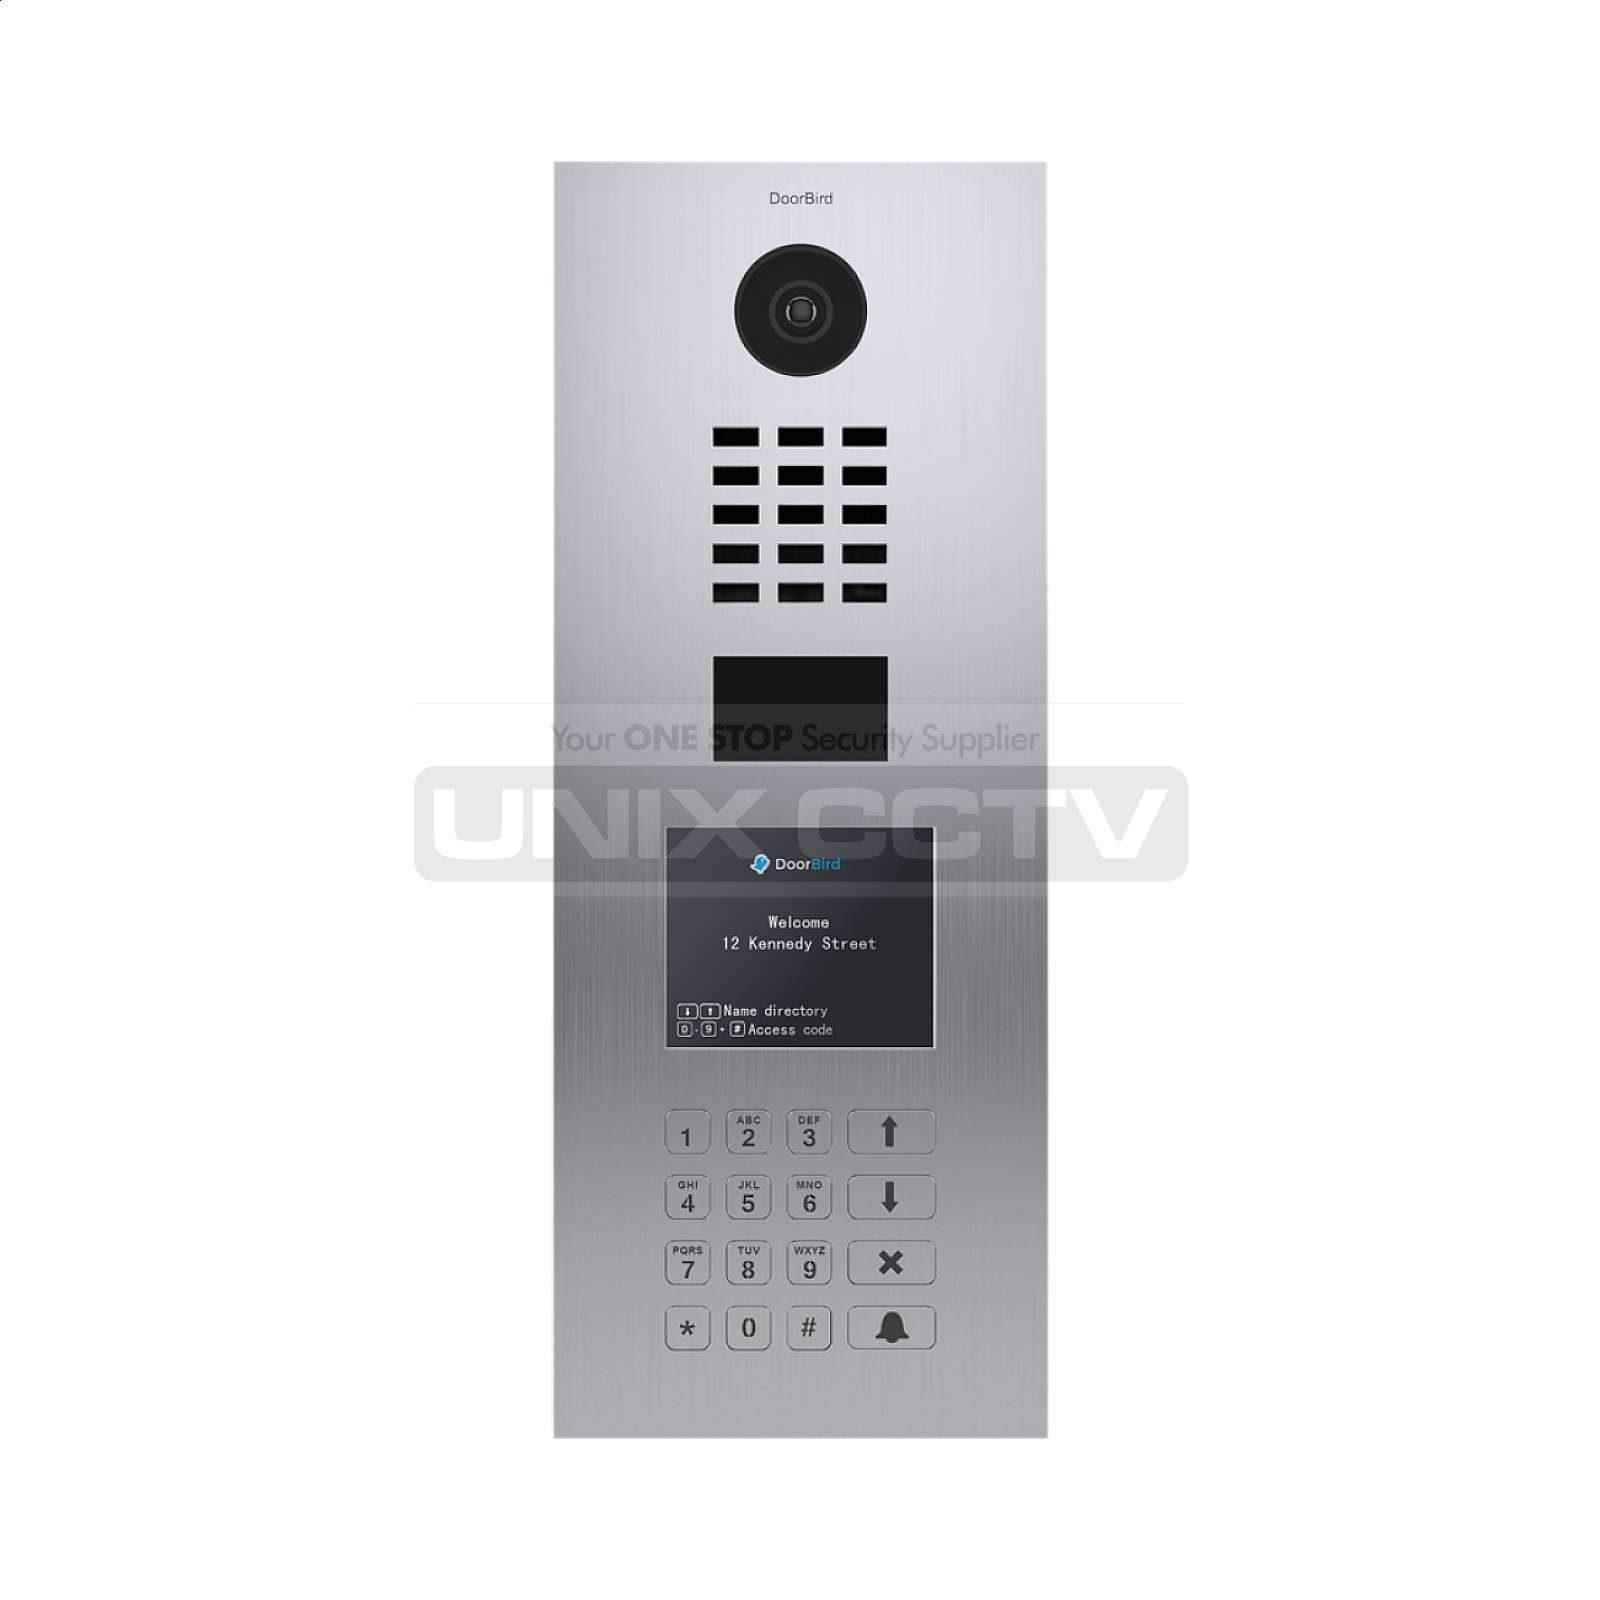 DoorBird | IP Video Door Station D21DKV, Brushed Stainless-Steel,  Display&Keypad Module, Vertical